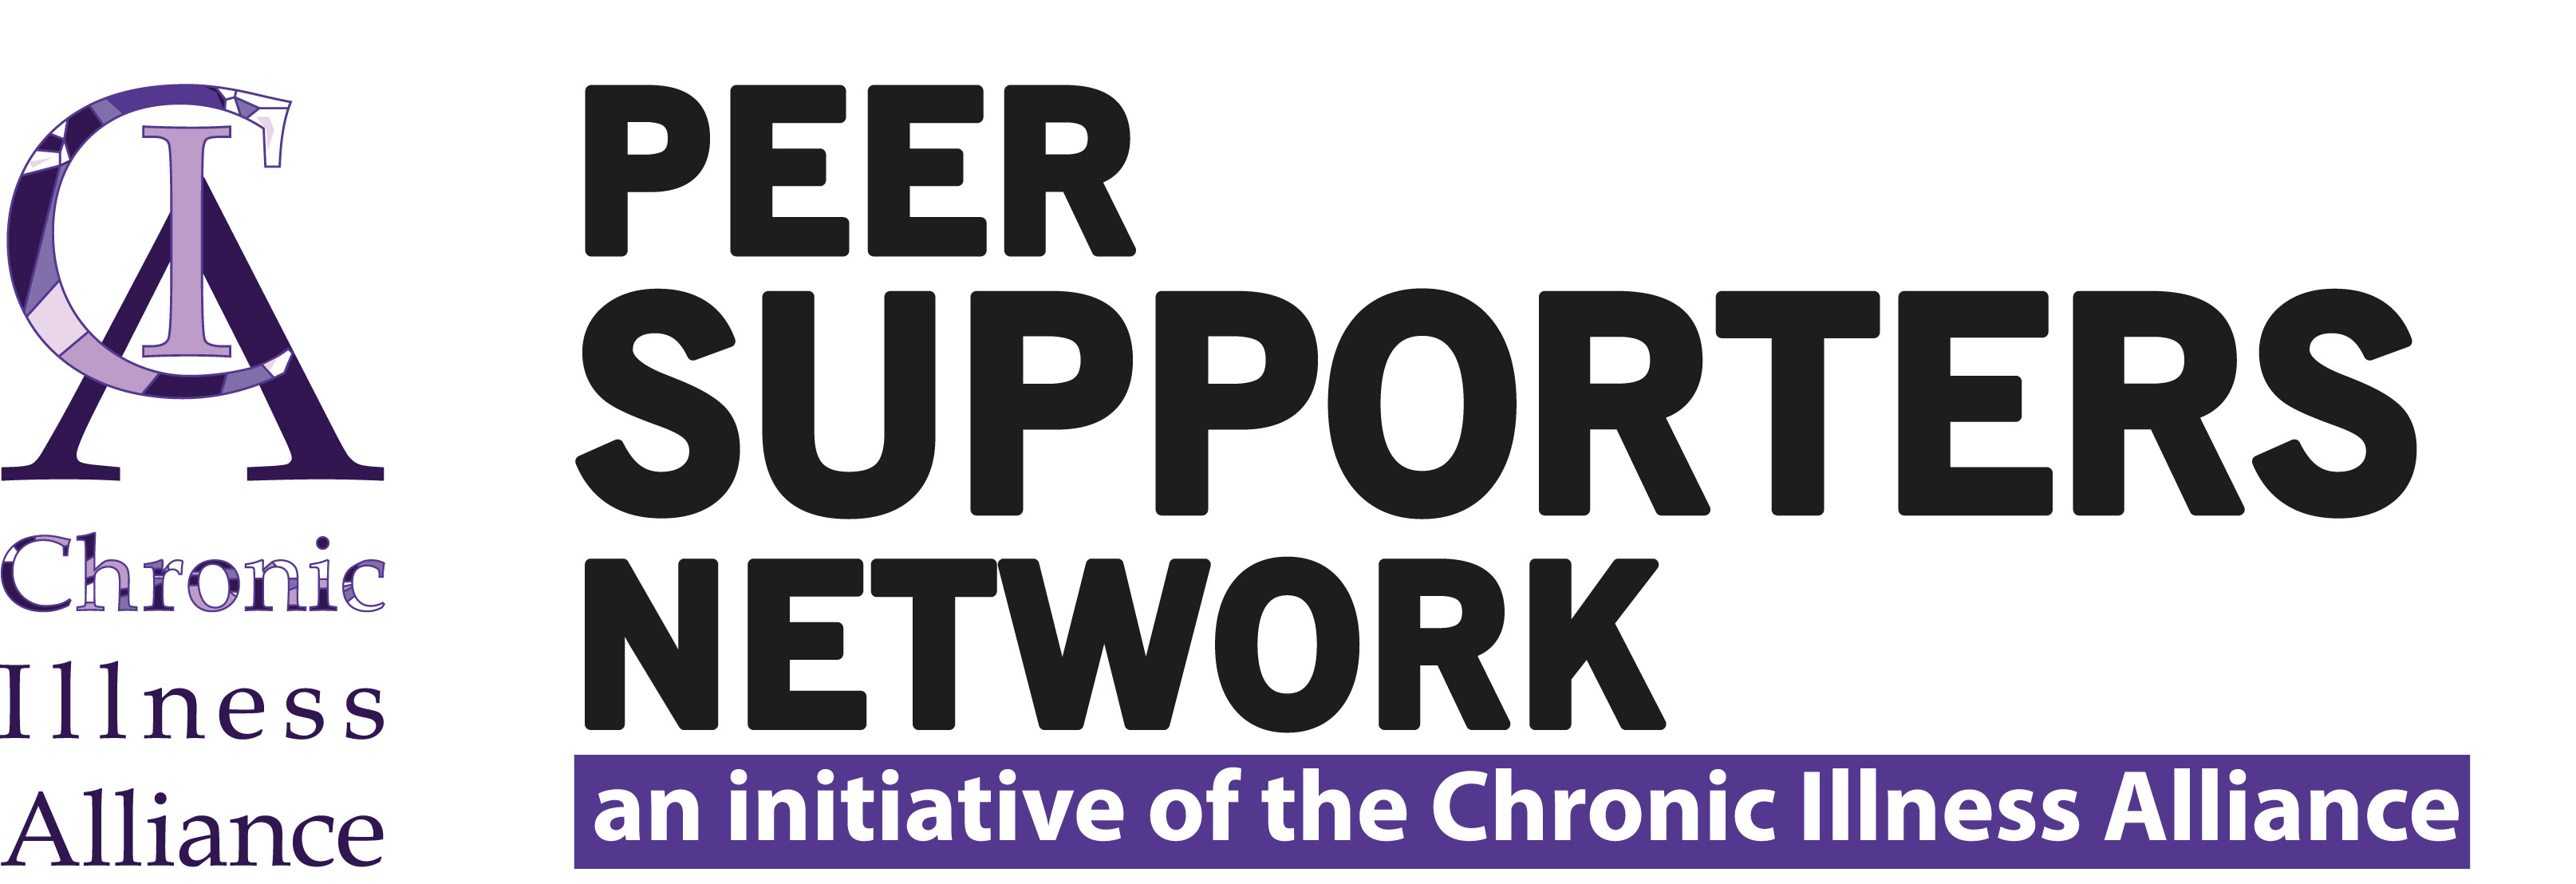 peer supporters network chronic illness alliance